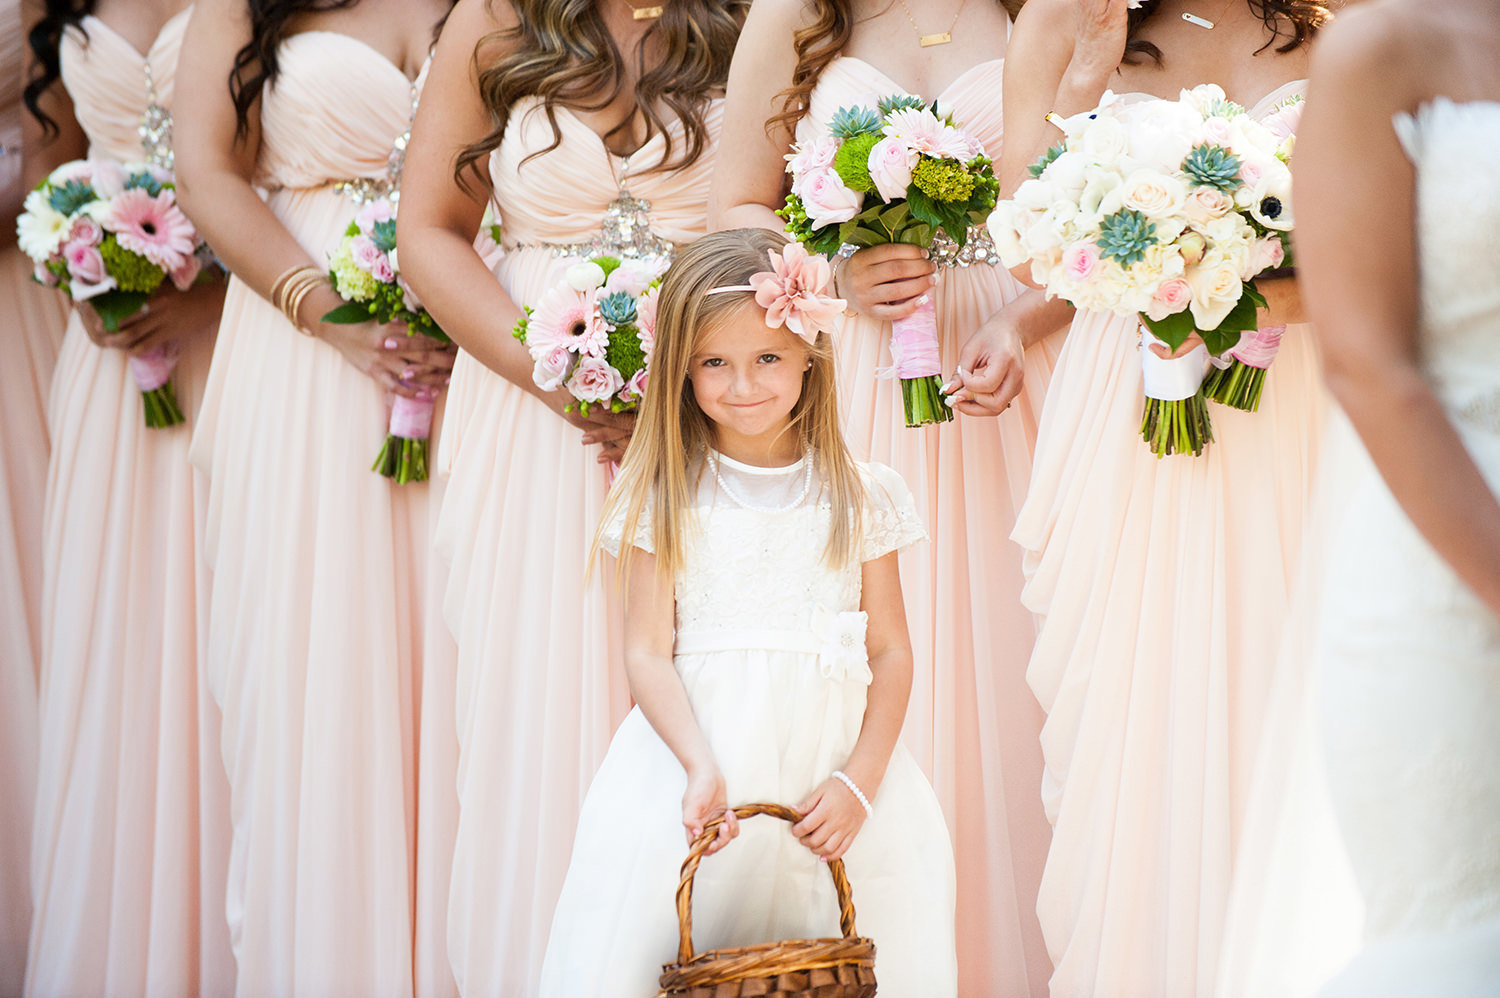 Sweet moment captured of the flower girl during the wedding ceremony